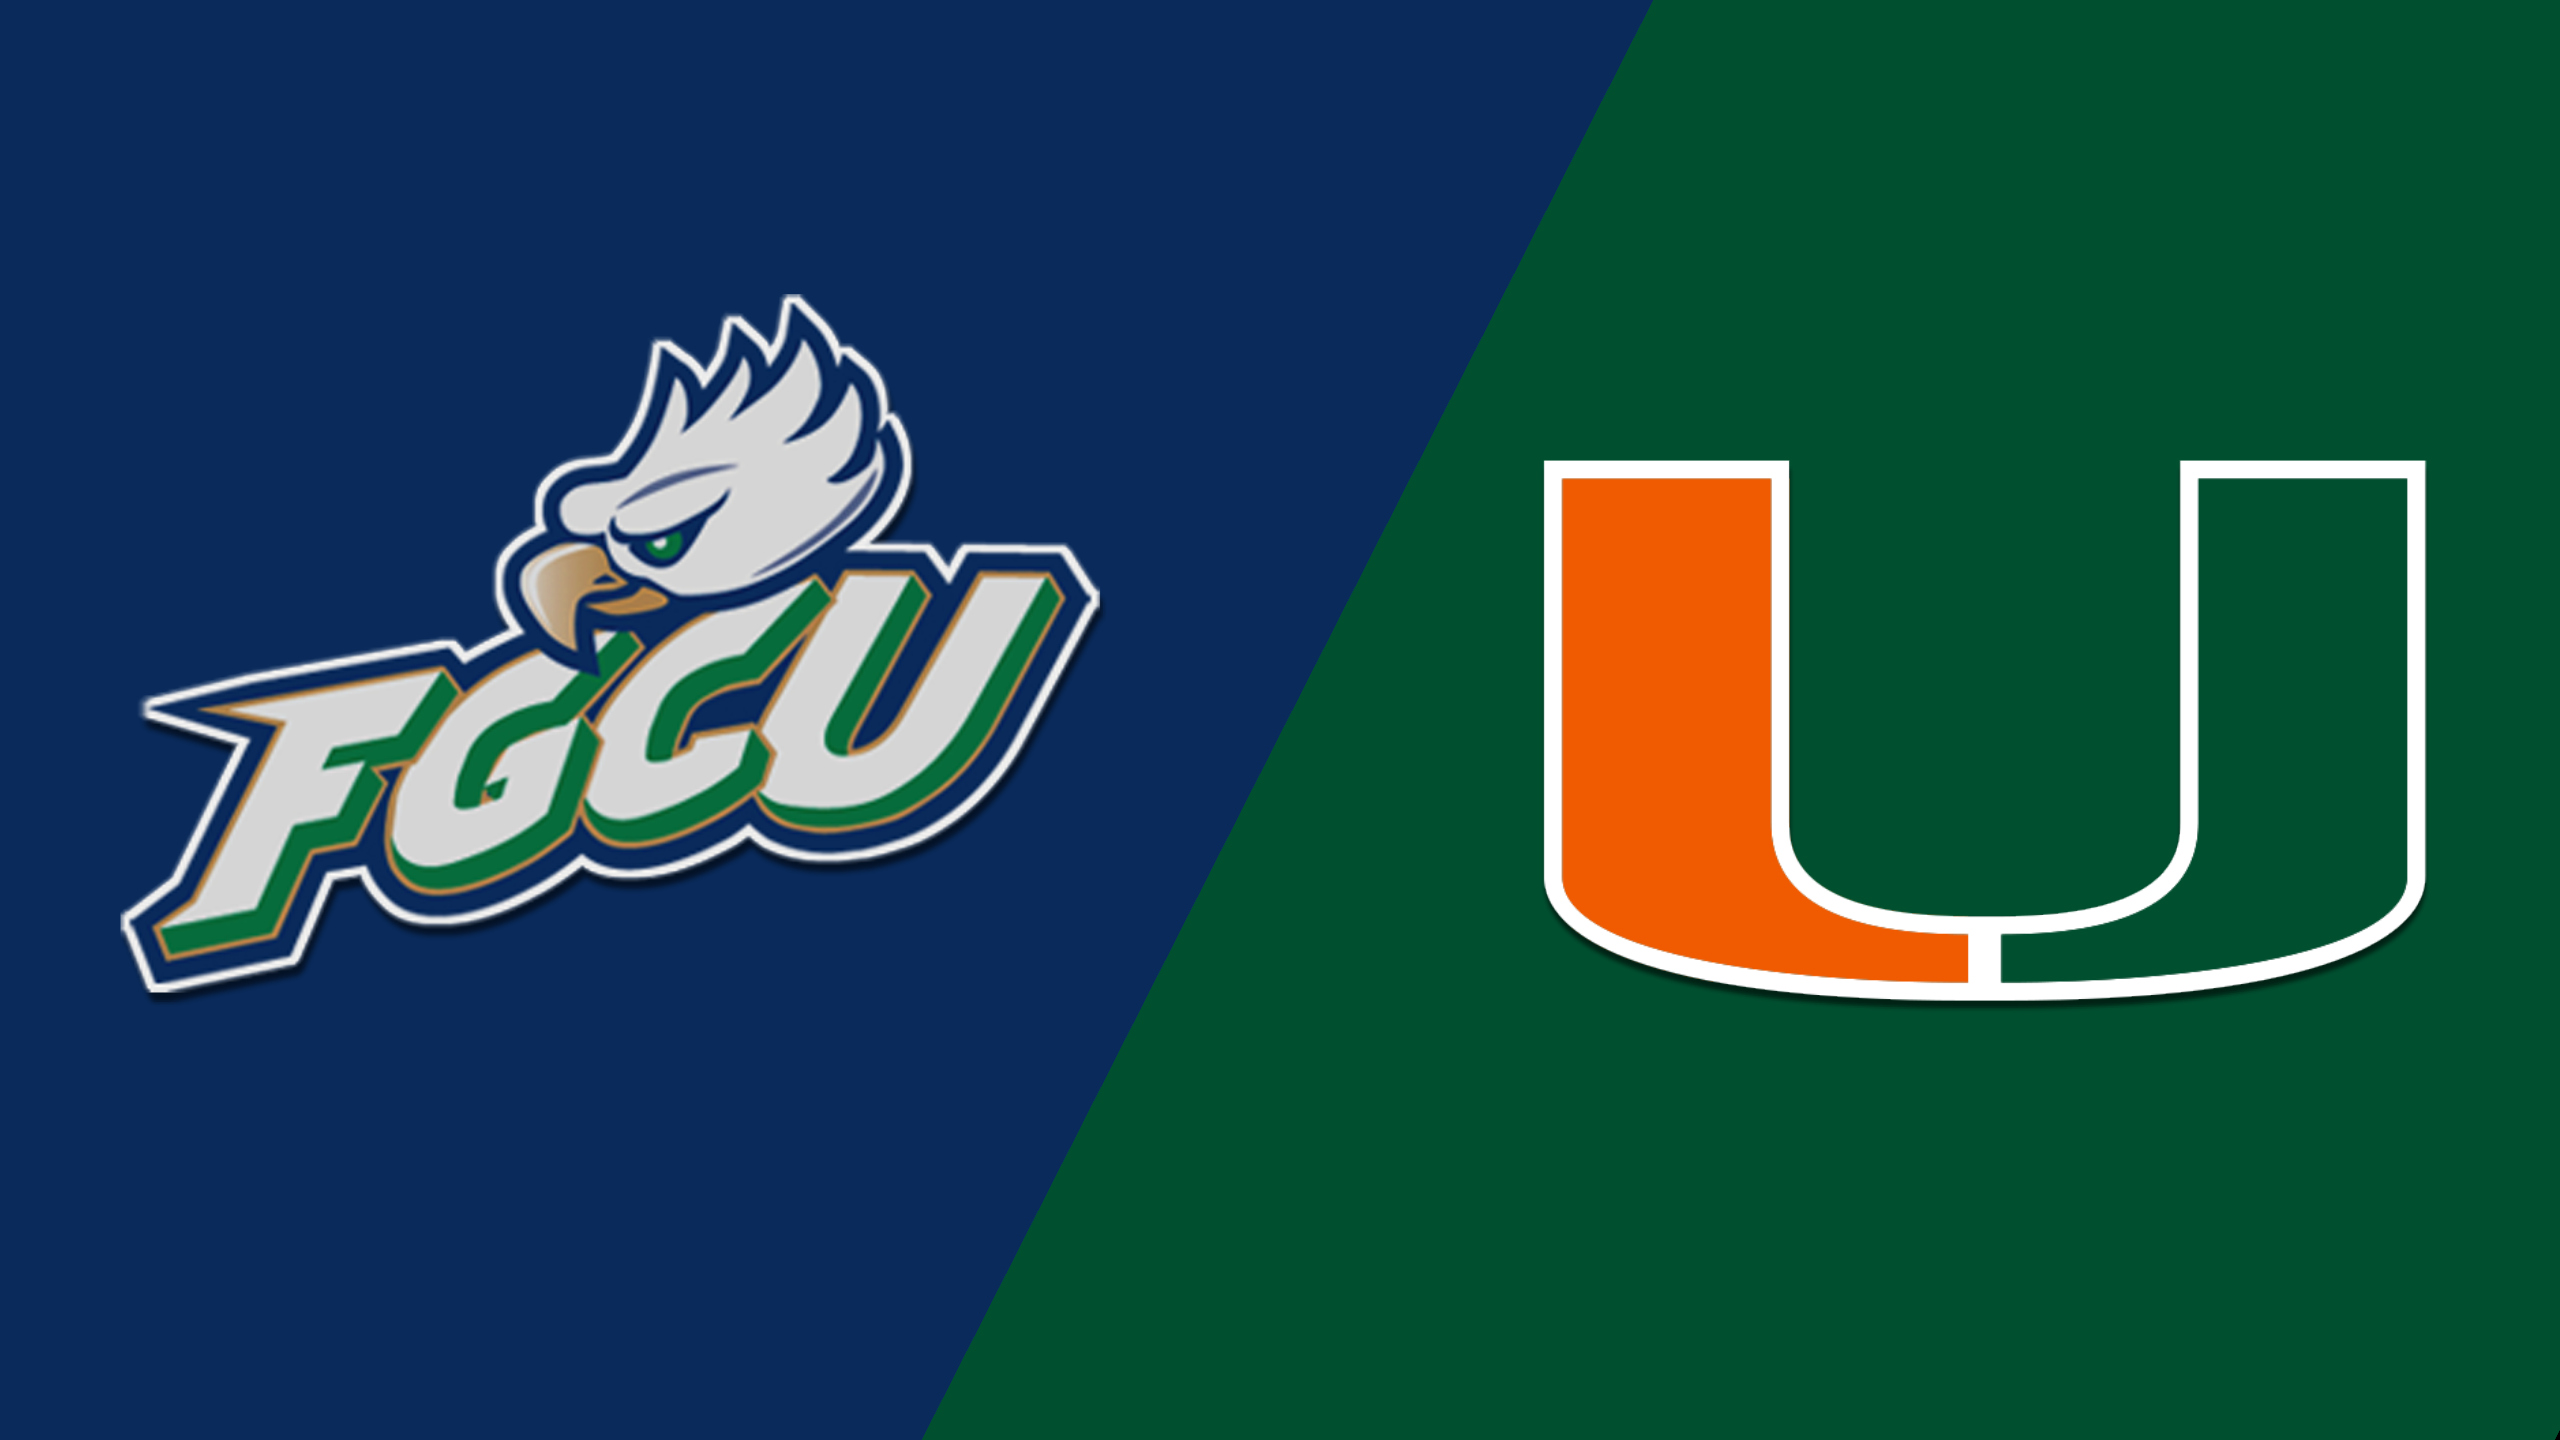 #13 Florida Gulf Coast vs. #4 Miami (FL) (First Round) (NCAA Women's Basketball Championship)